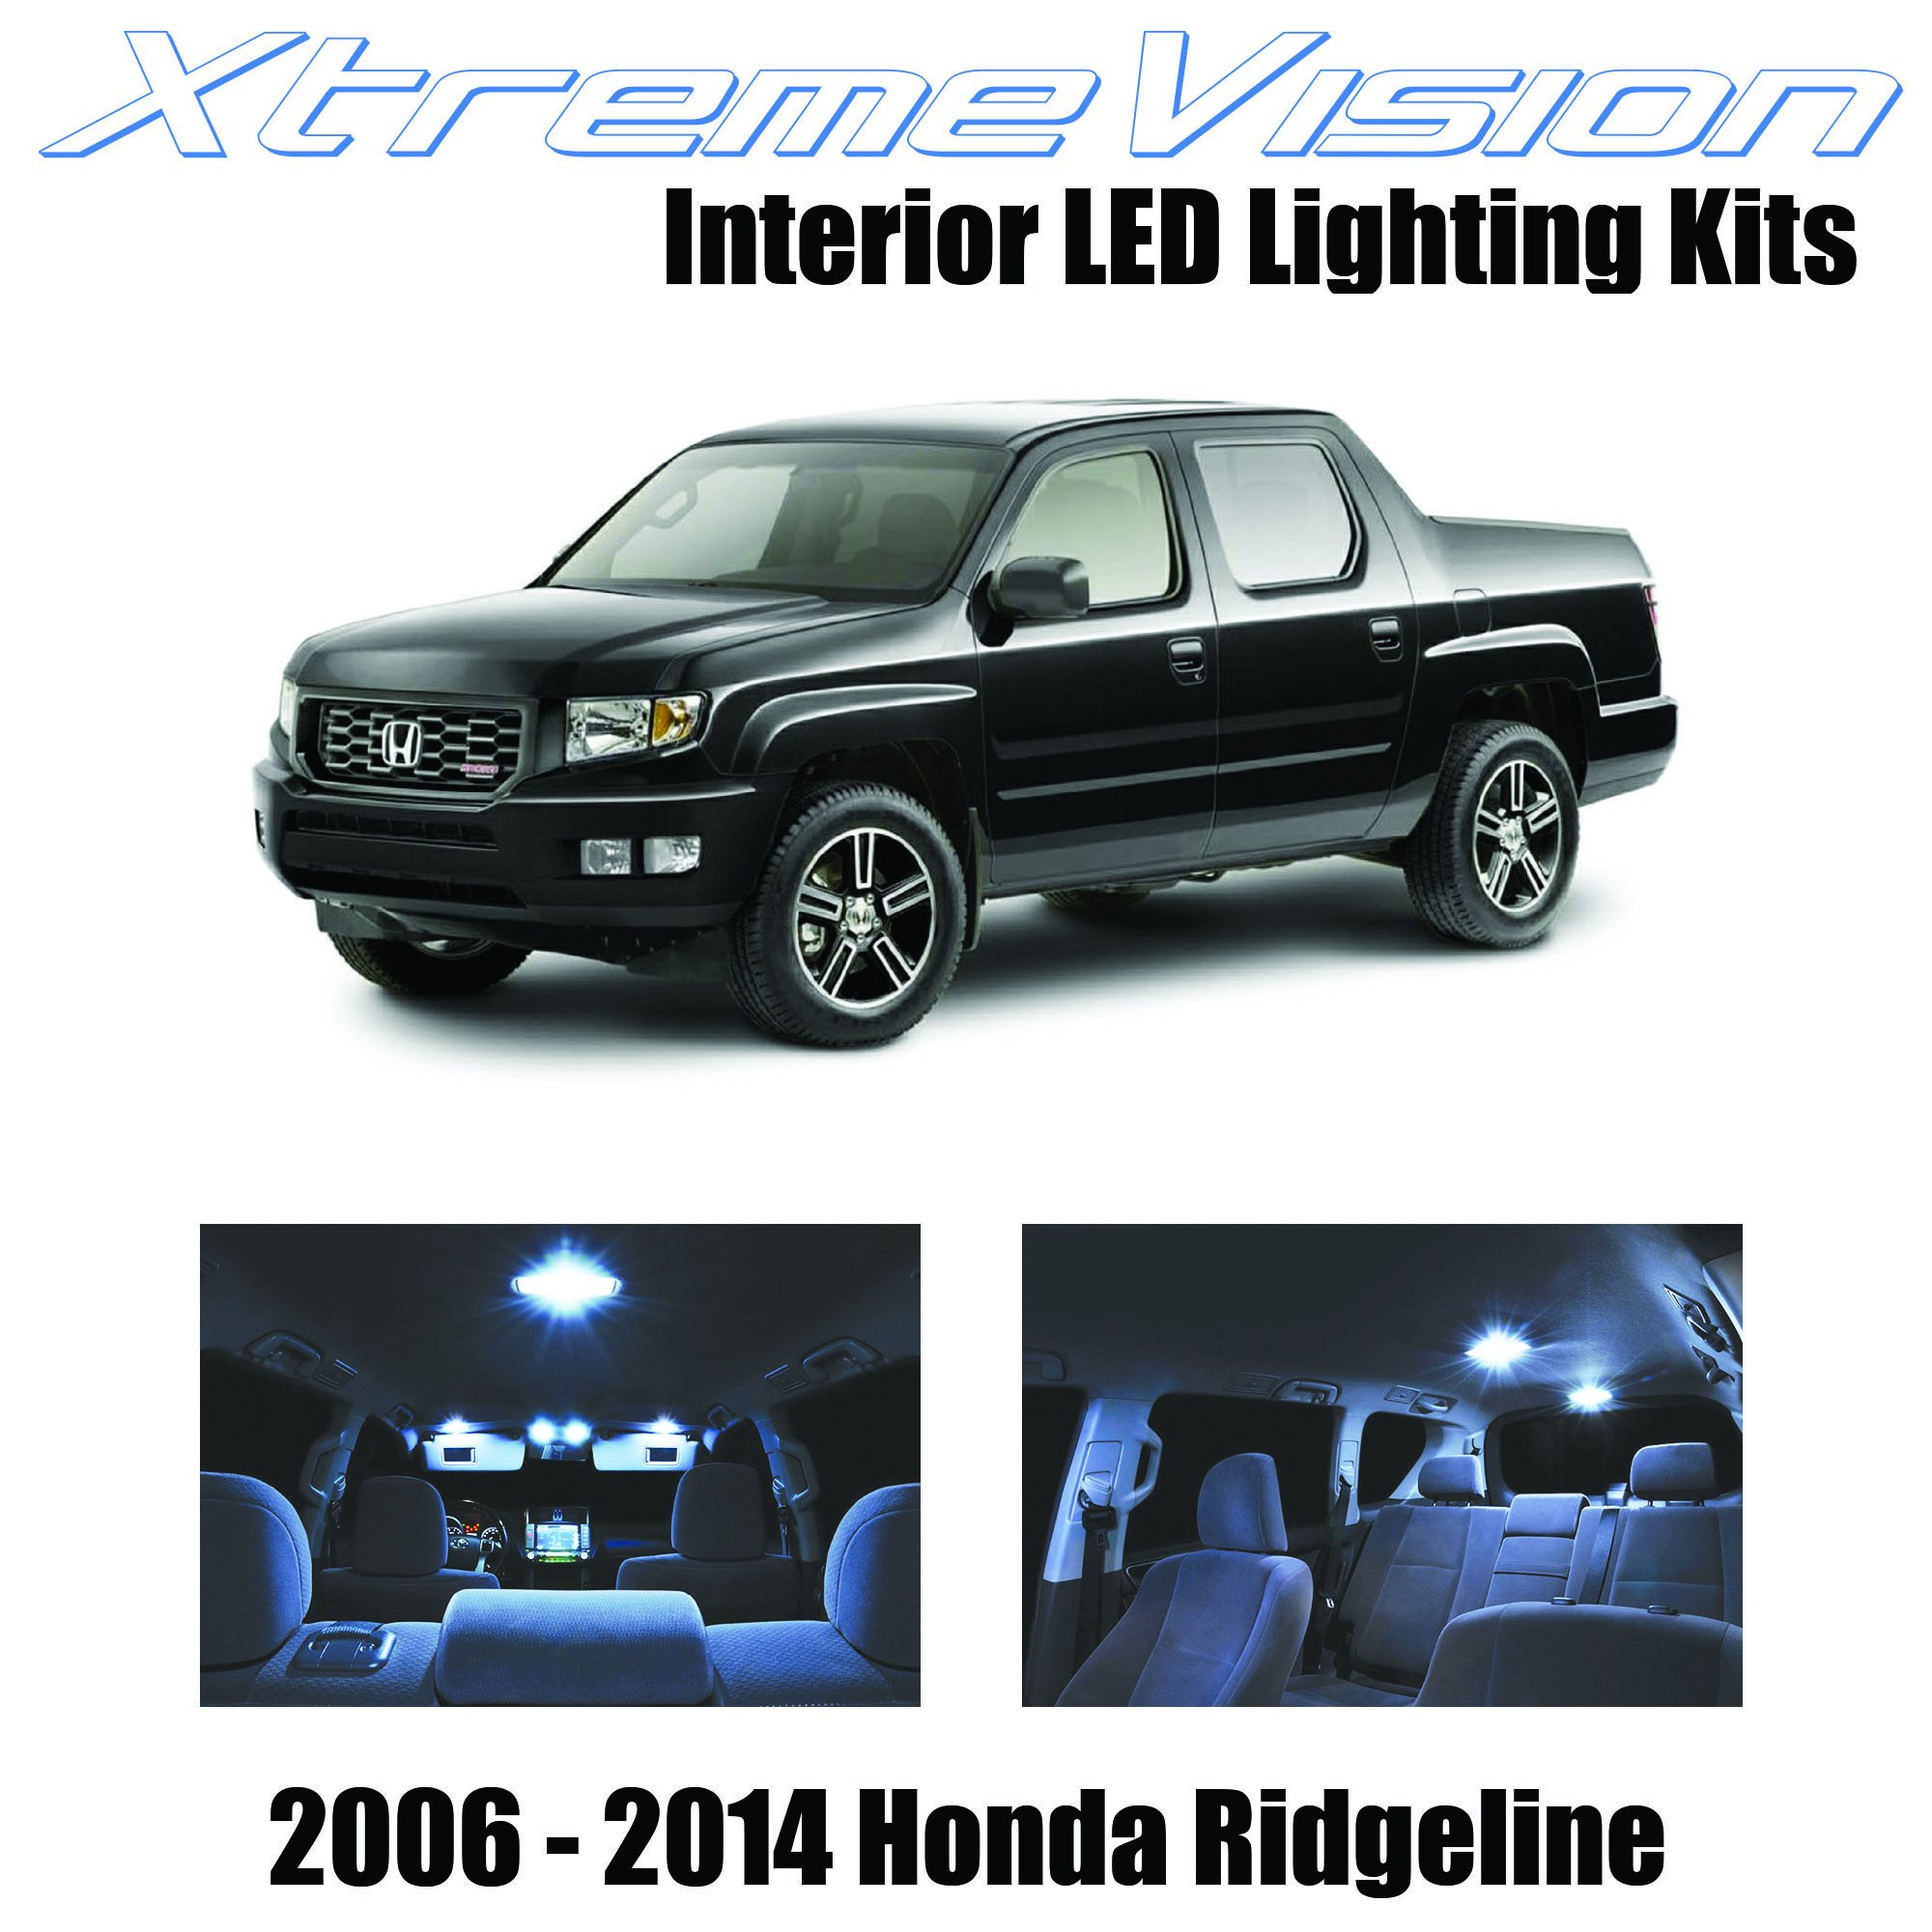 XtremeVision Interior LED for Honda Ridgeline 2006-2014 (18 Pieces) Cool White Interior LED Kit + Installation Tool